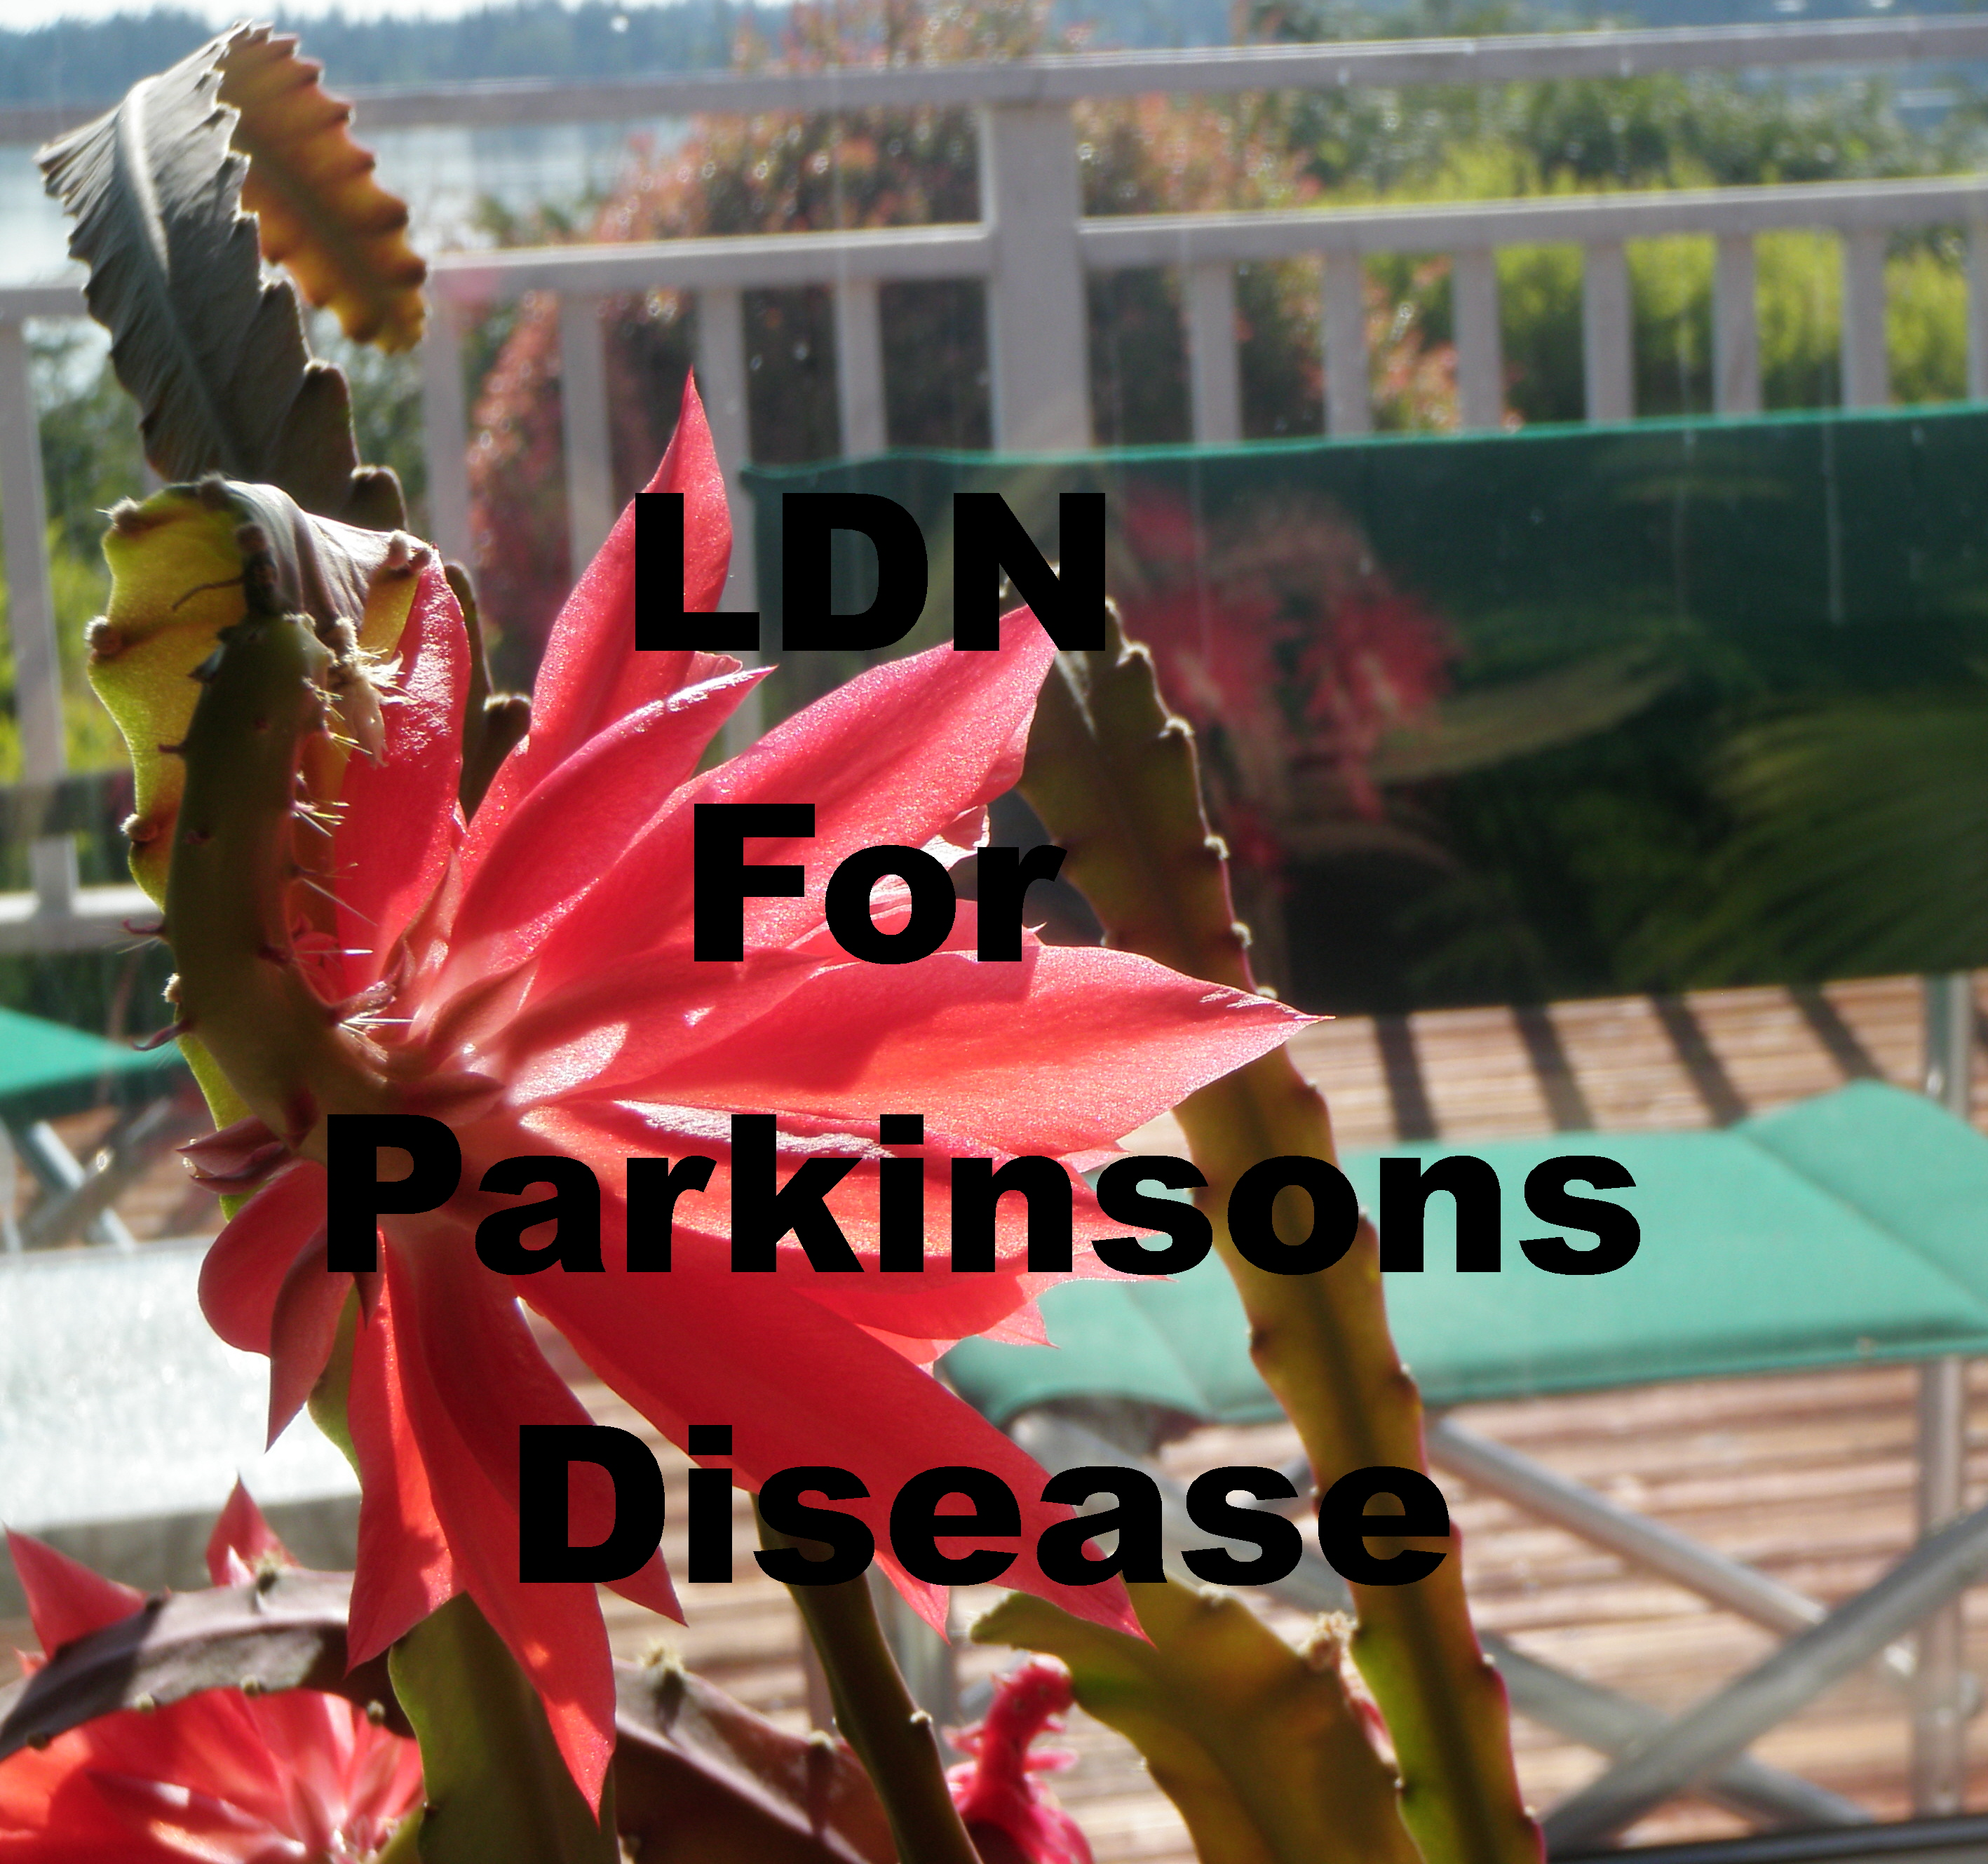 LDN for Parkinsons Disease